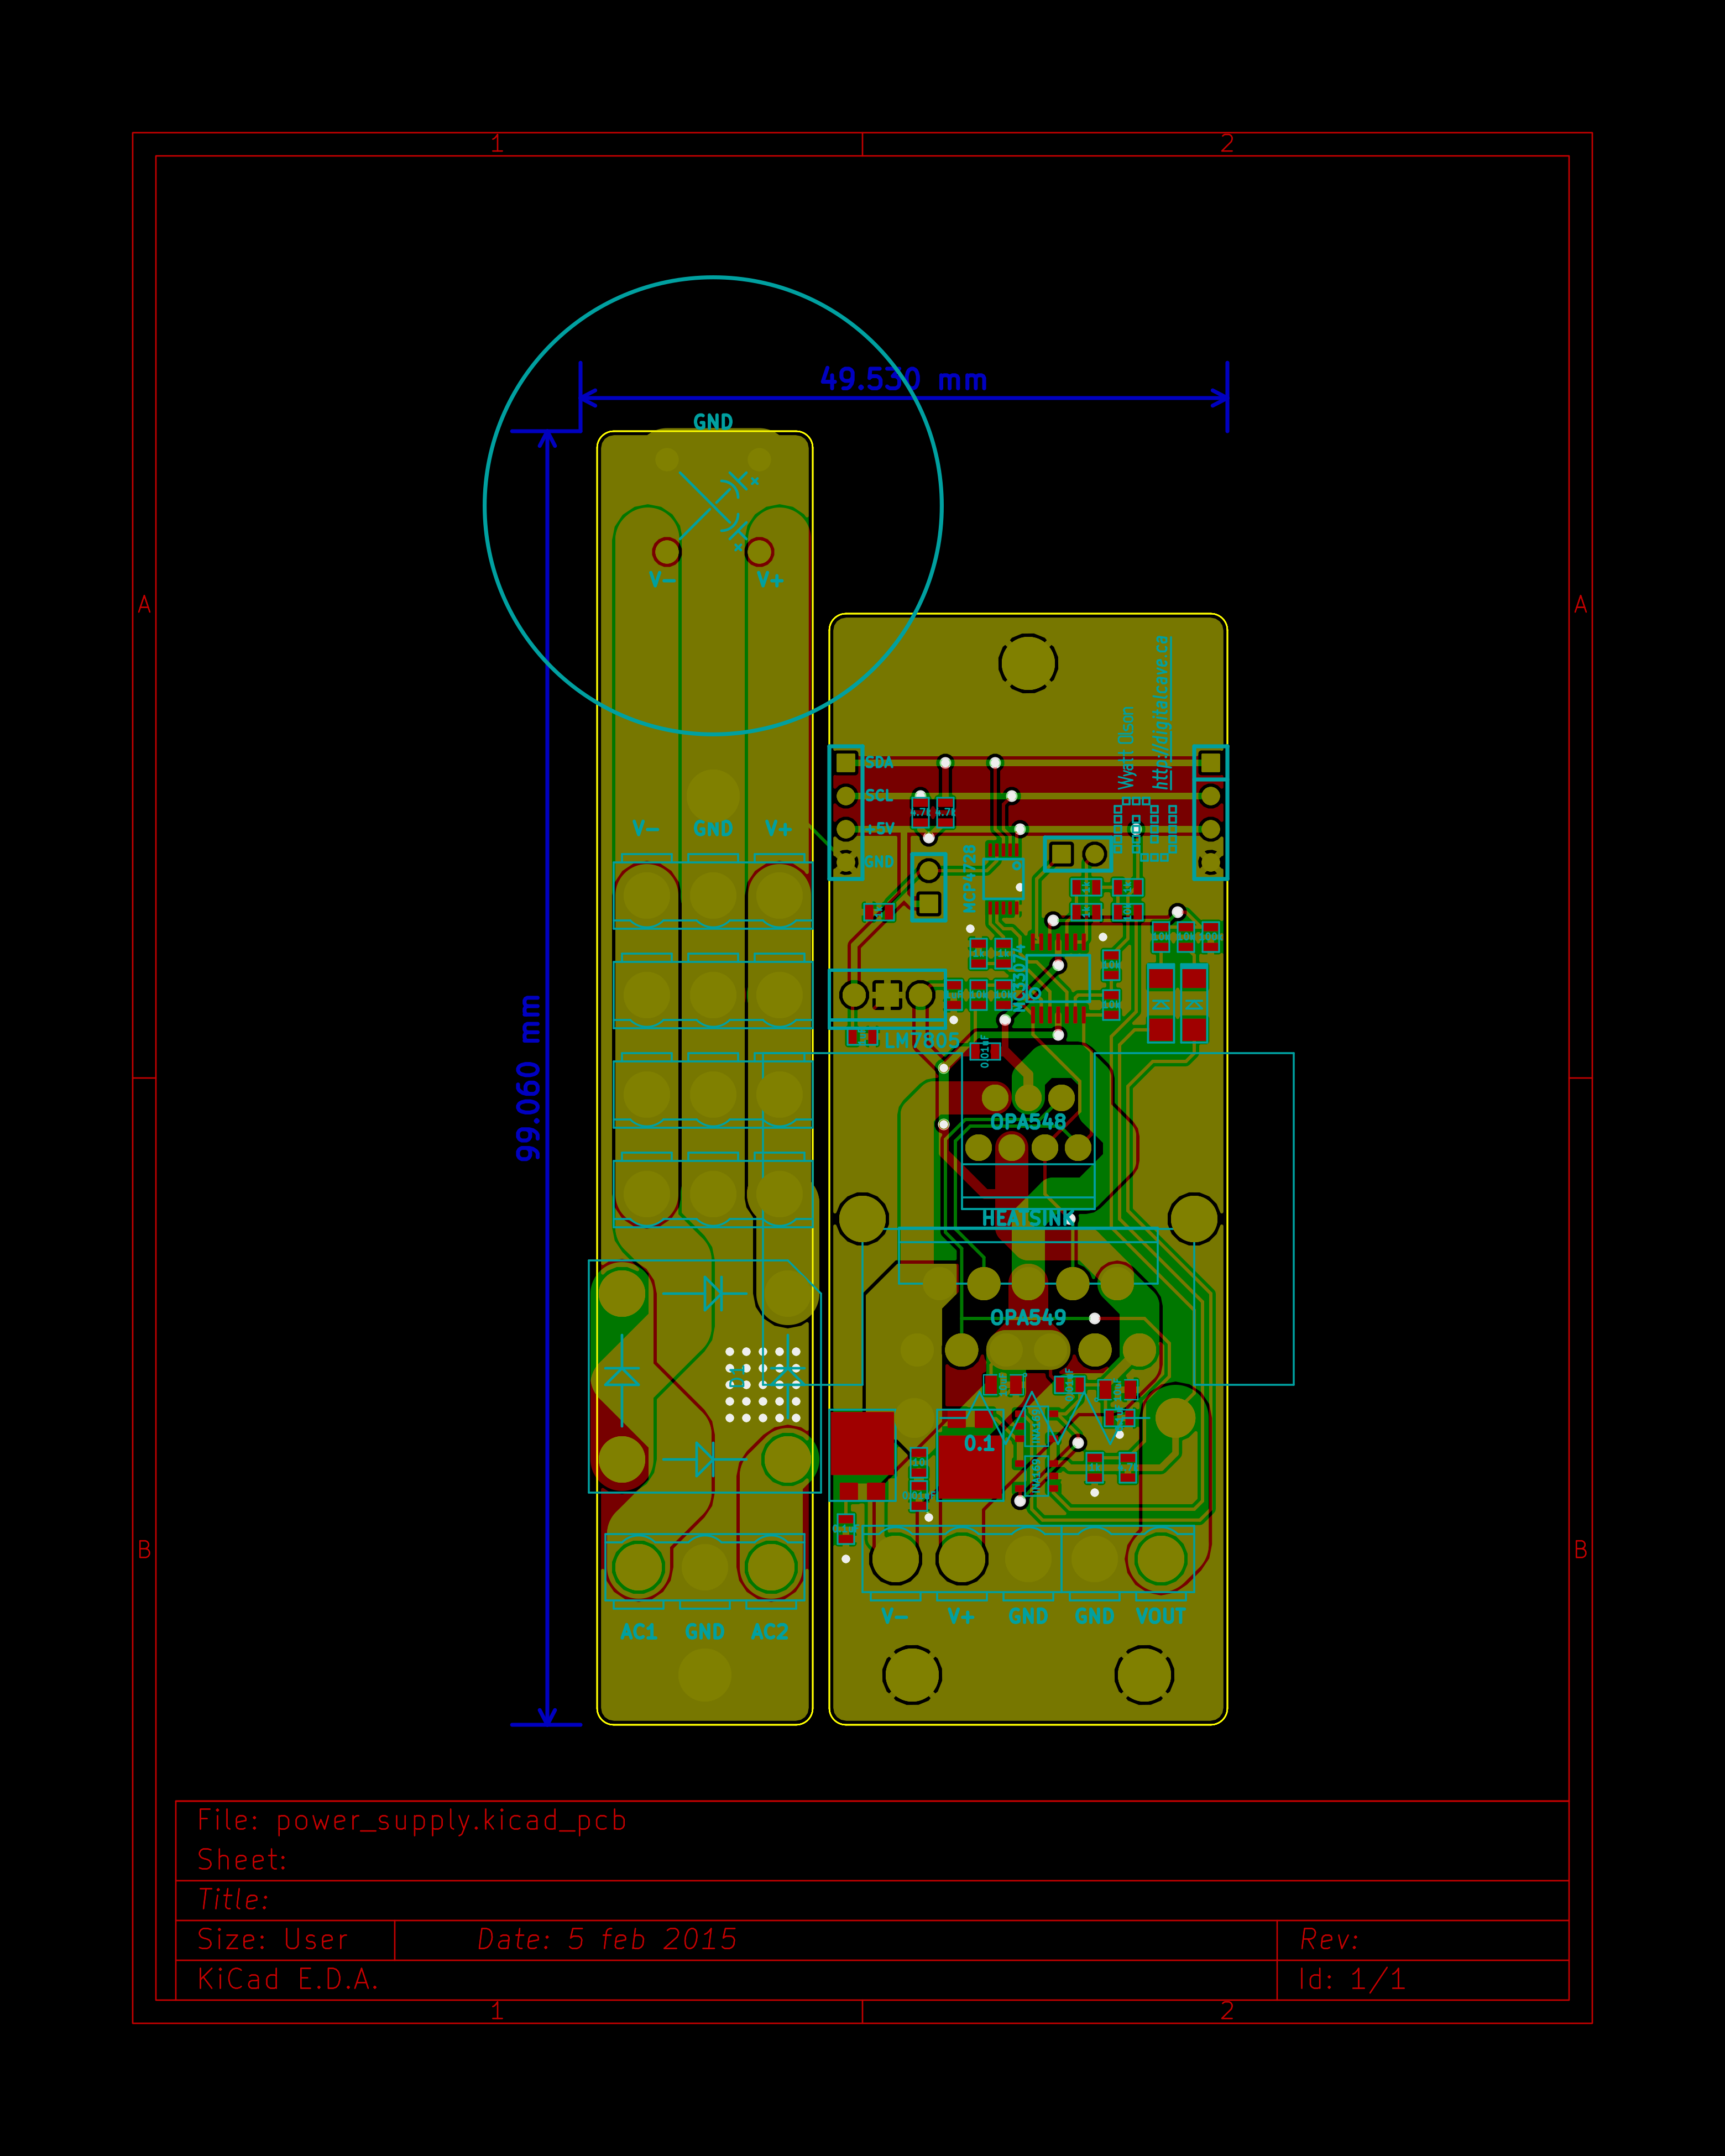 Project Bench Power Supply The Main Limitation In Circuit Simulation Digichip Is That You Can First Draft Of Schematic Completed Along With A Routed Board Coming At Just Under 5x10cm Sans Ubbb32u4 Controller Which Will Be